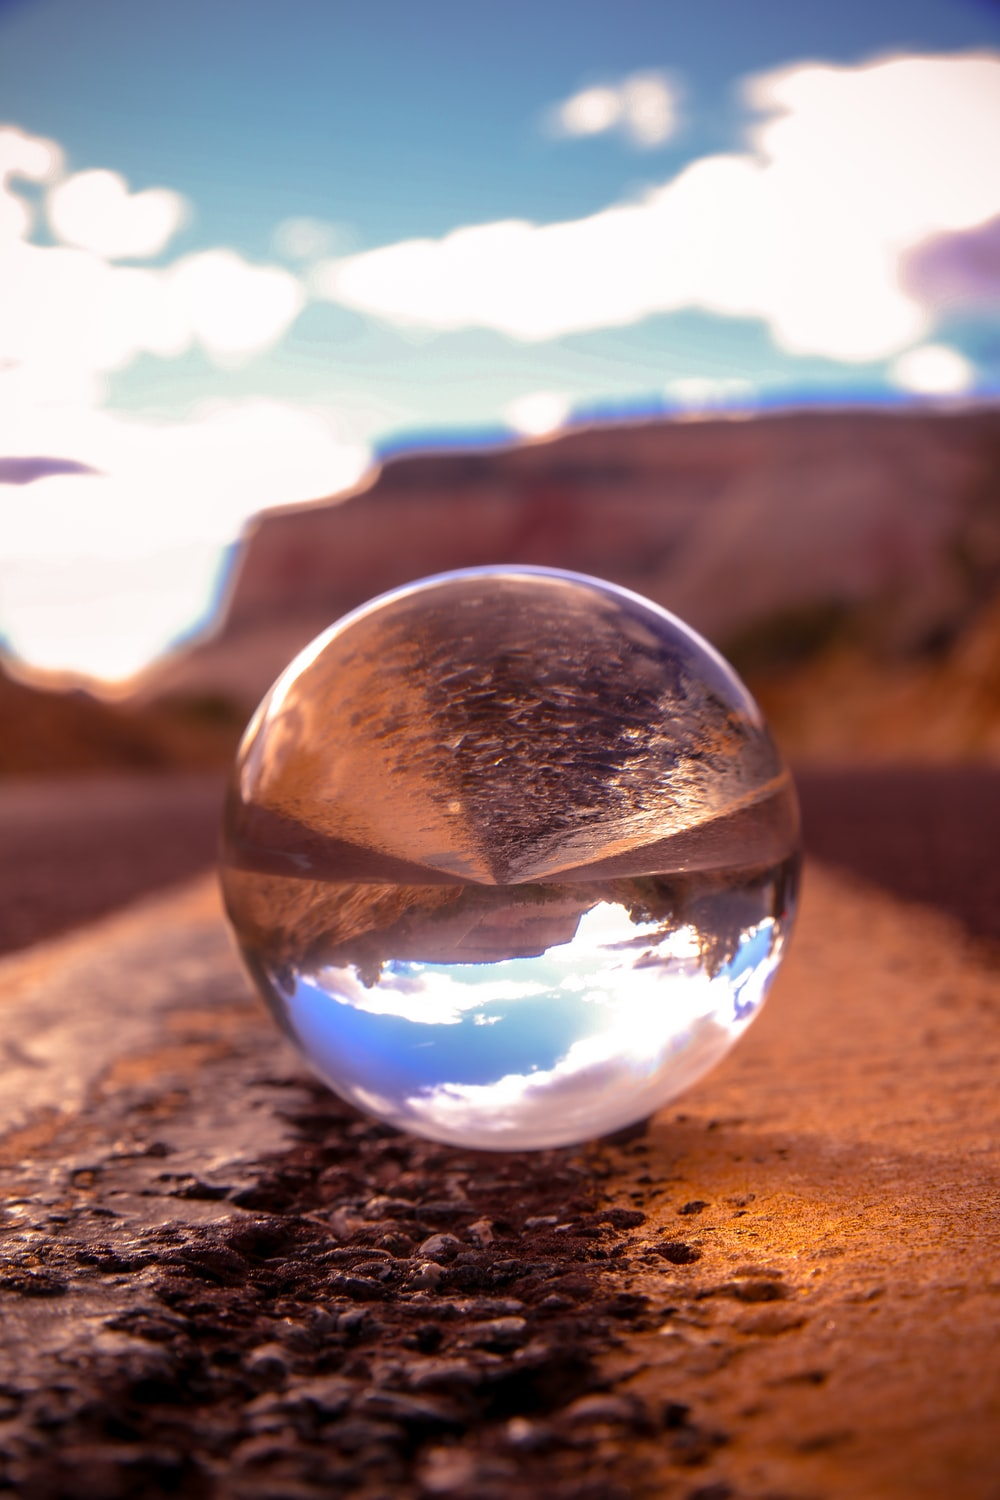 clear glass ball on brown sand during daytime